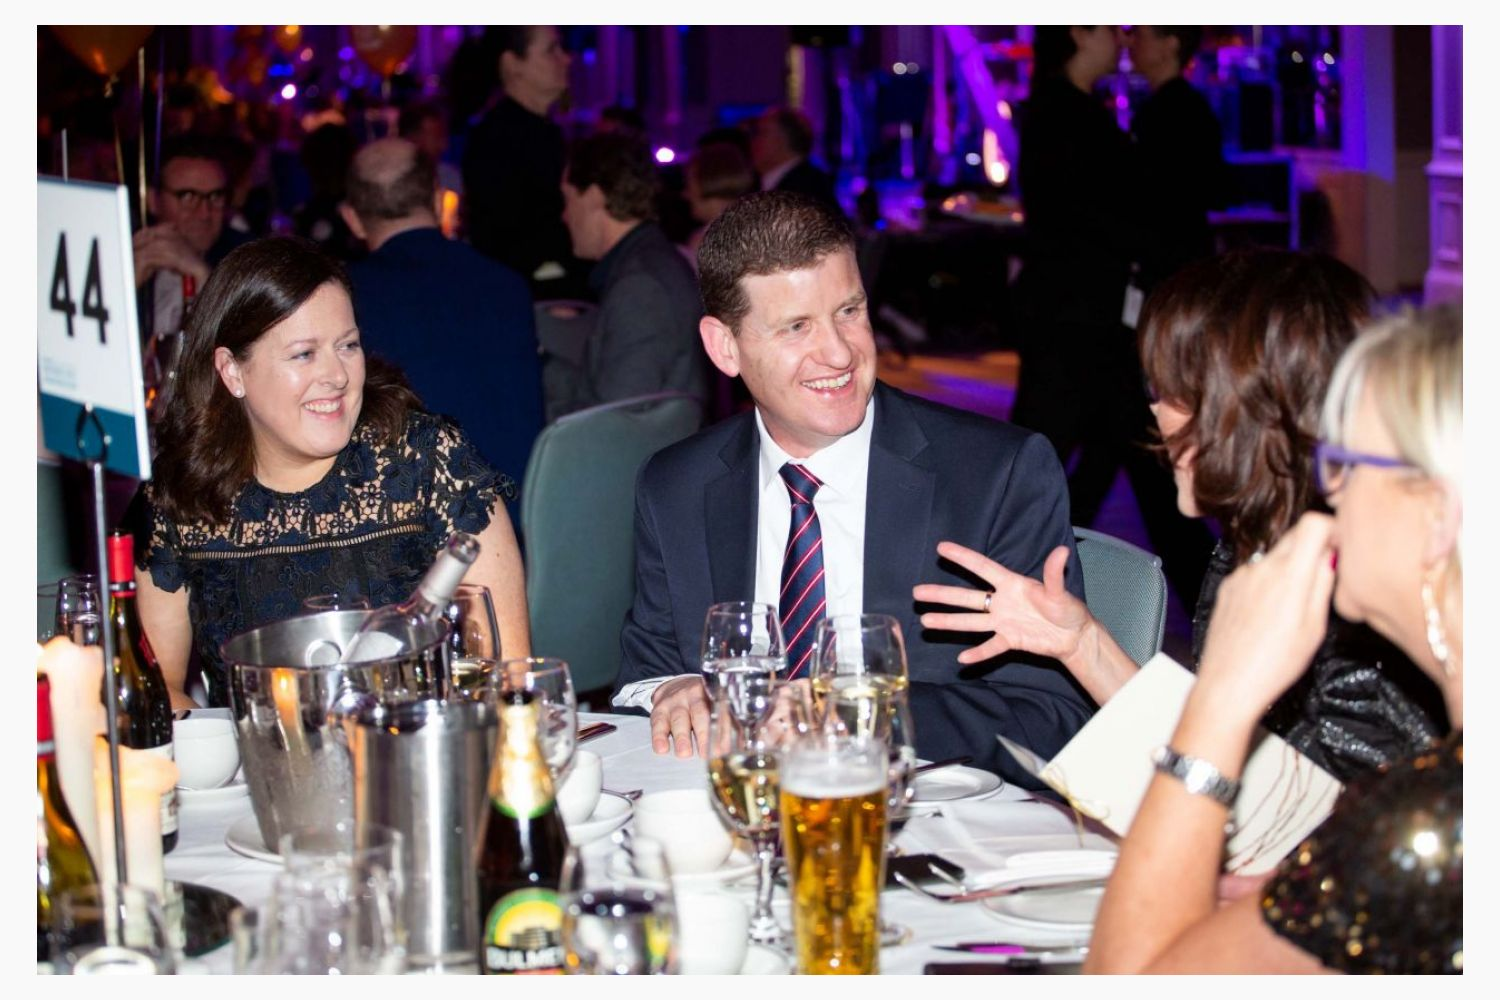 Gala Ball Jan 25th - Oh What a Night !!!!!